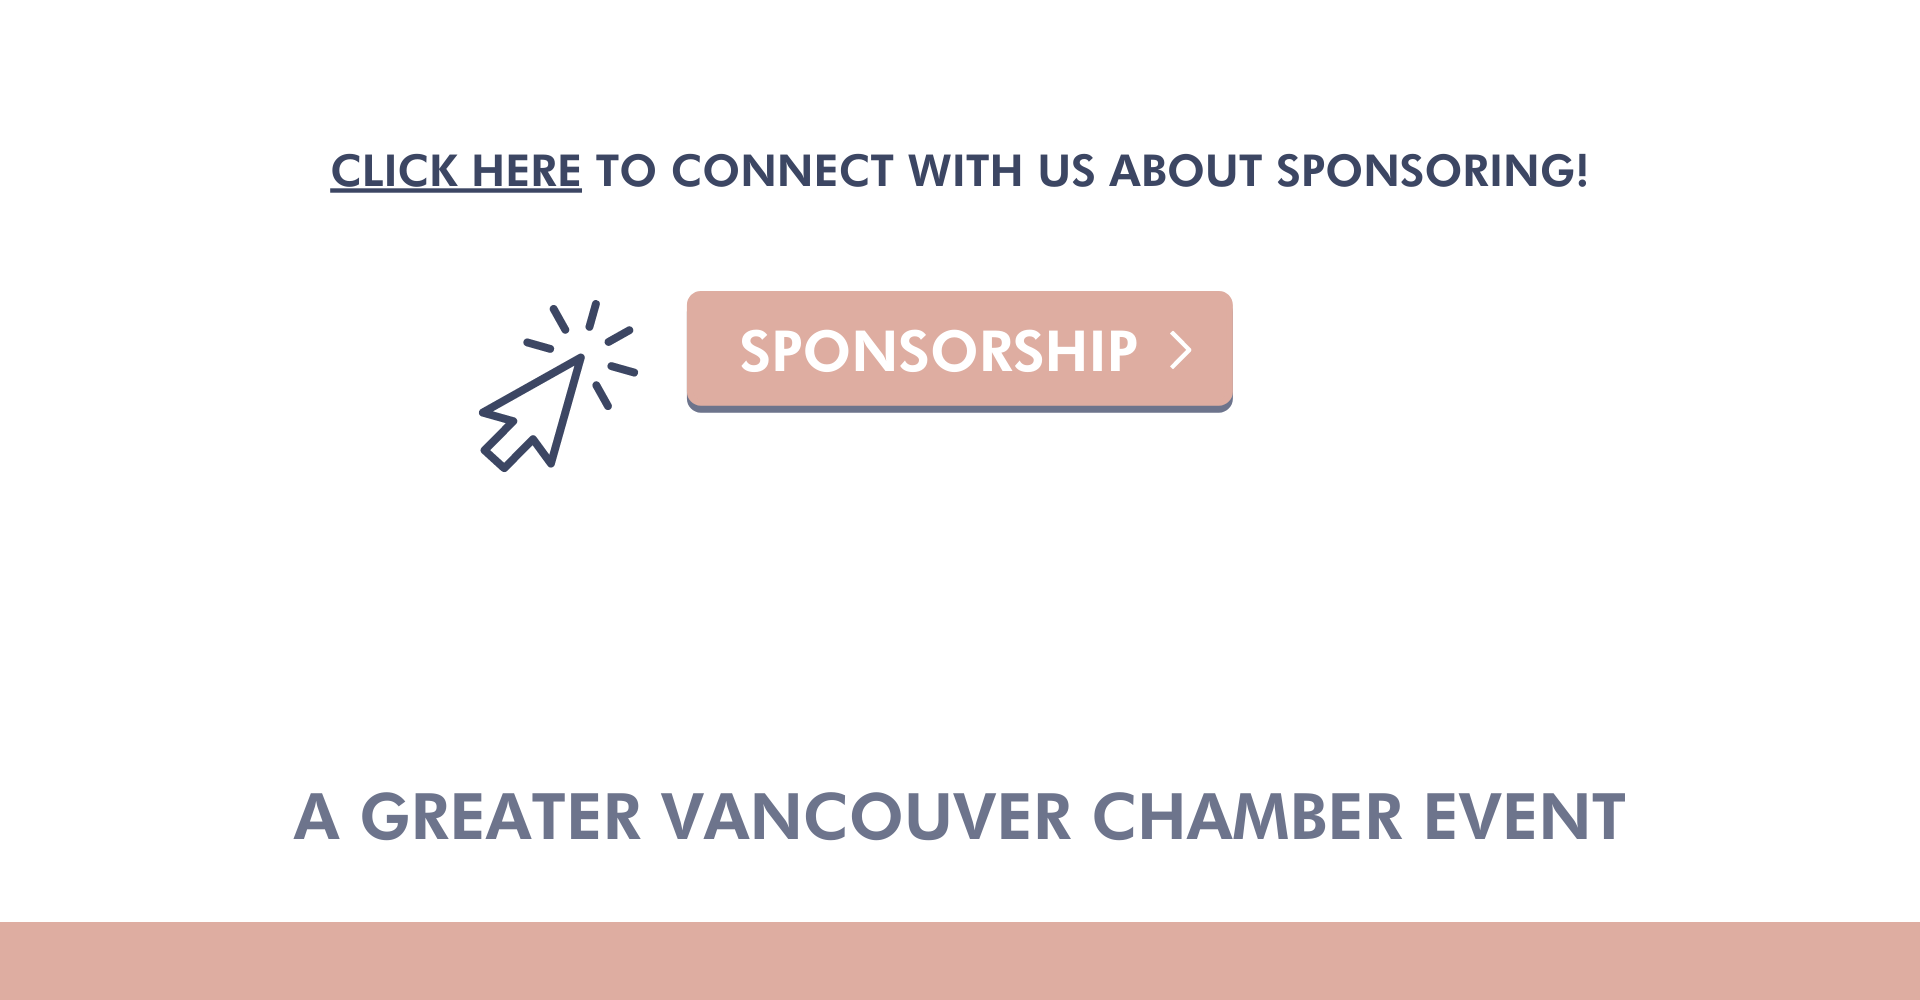 CTA Sponsorship sponsor click here a greater vancouver chamber event connect with us about sponsoring golf